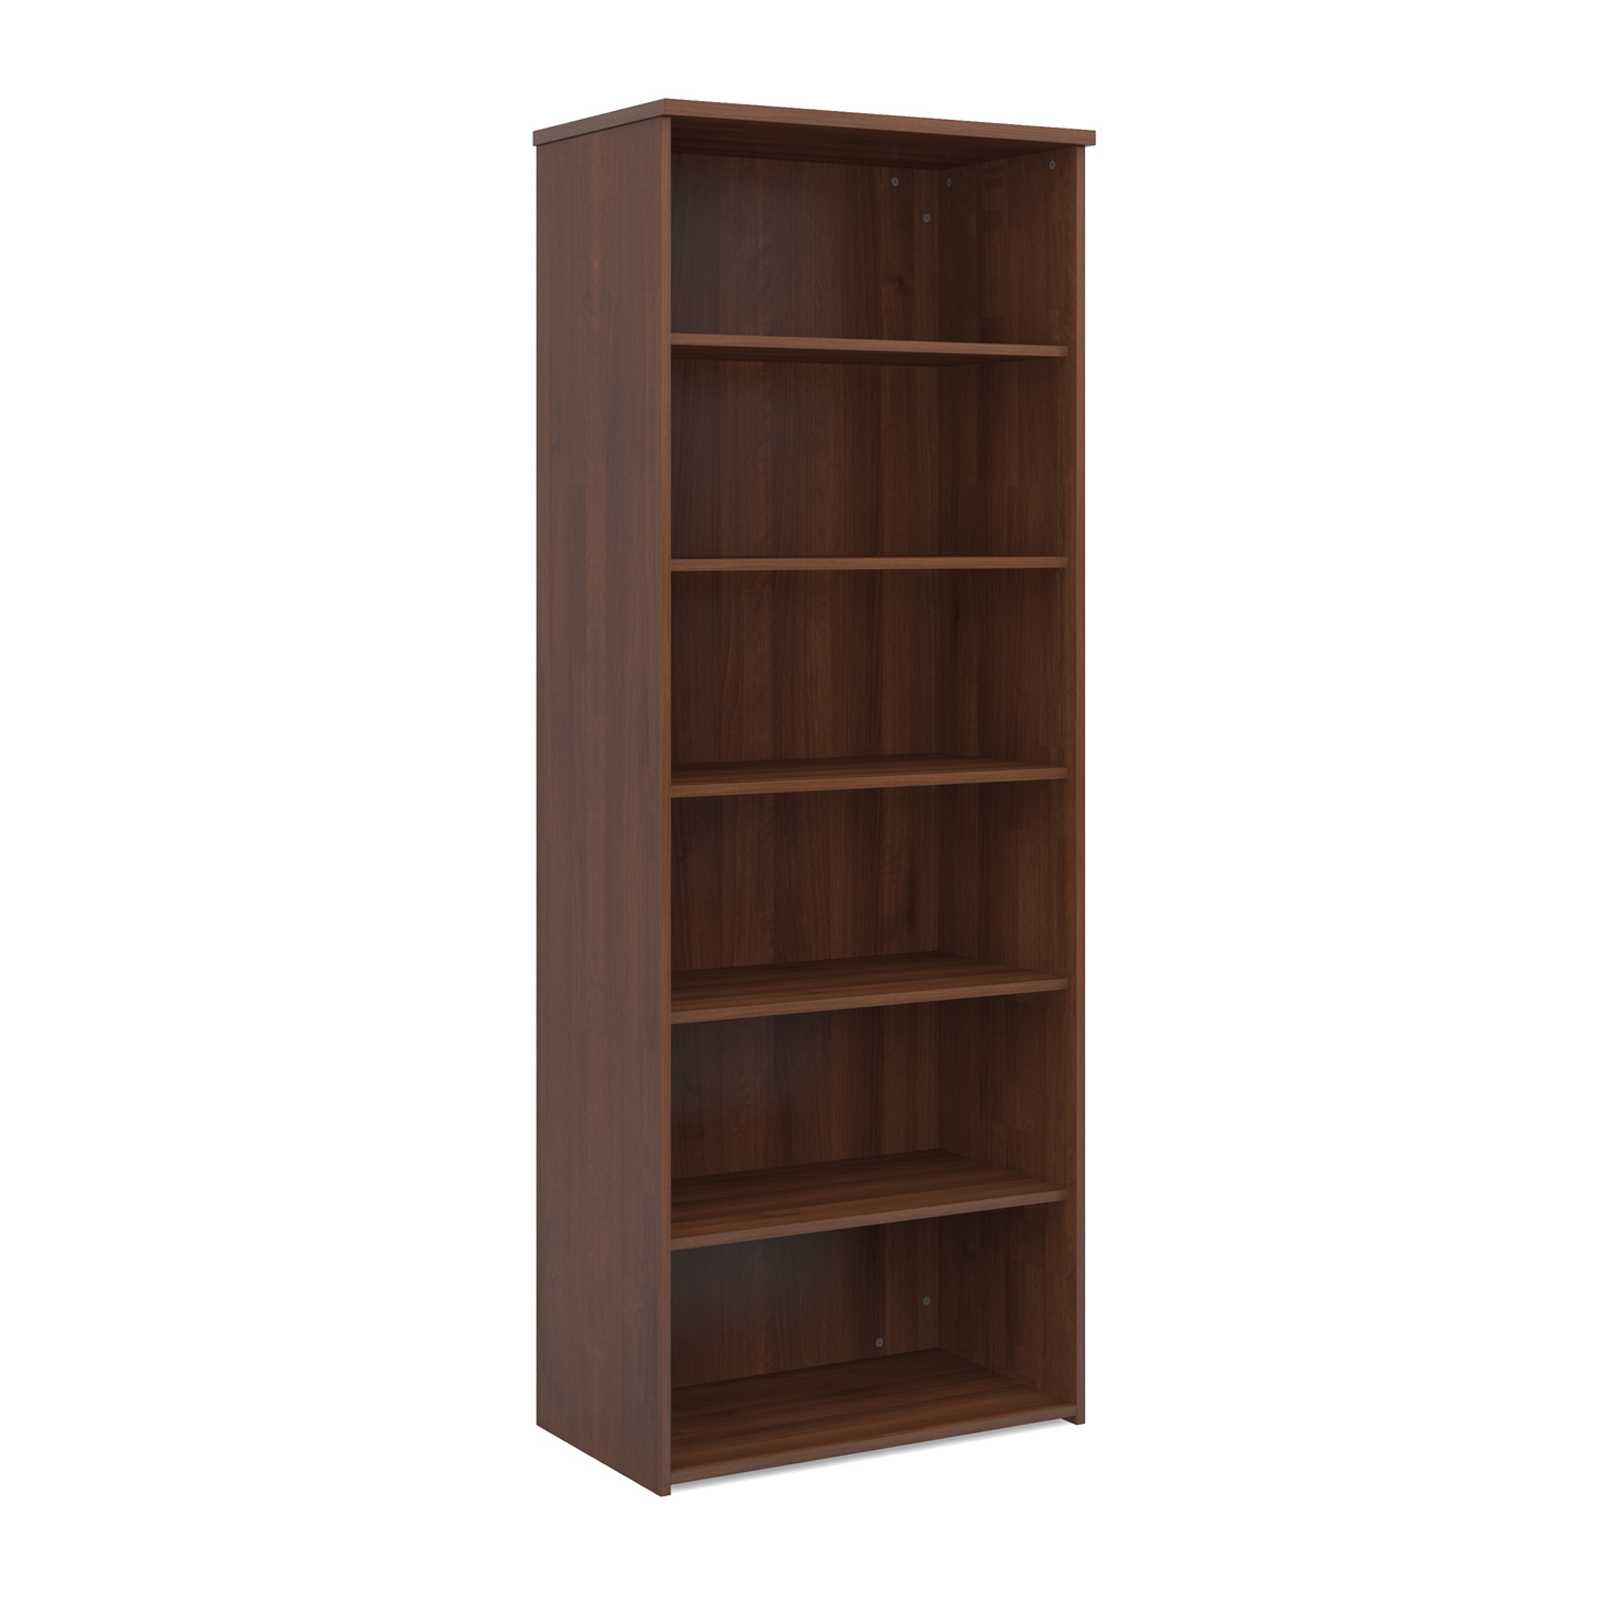 Over 1200mm High Universal bookcase 2140mm high with 5 shelves - walnut